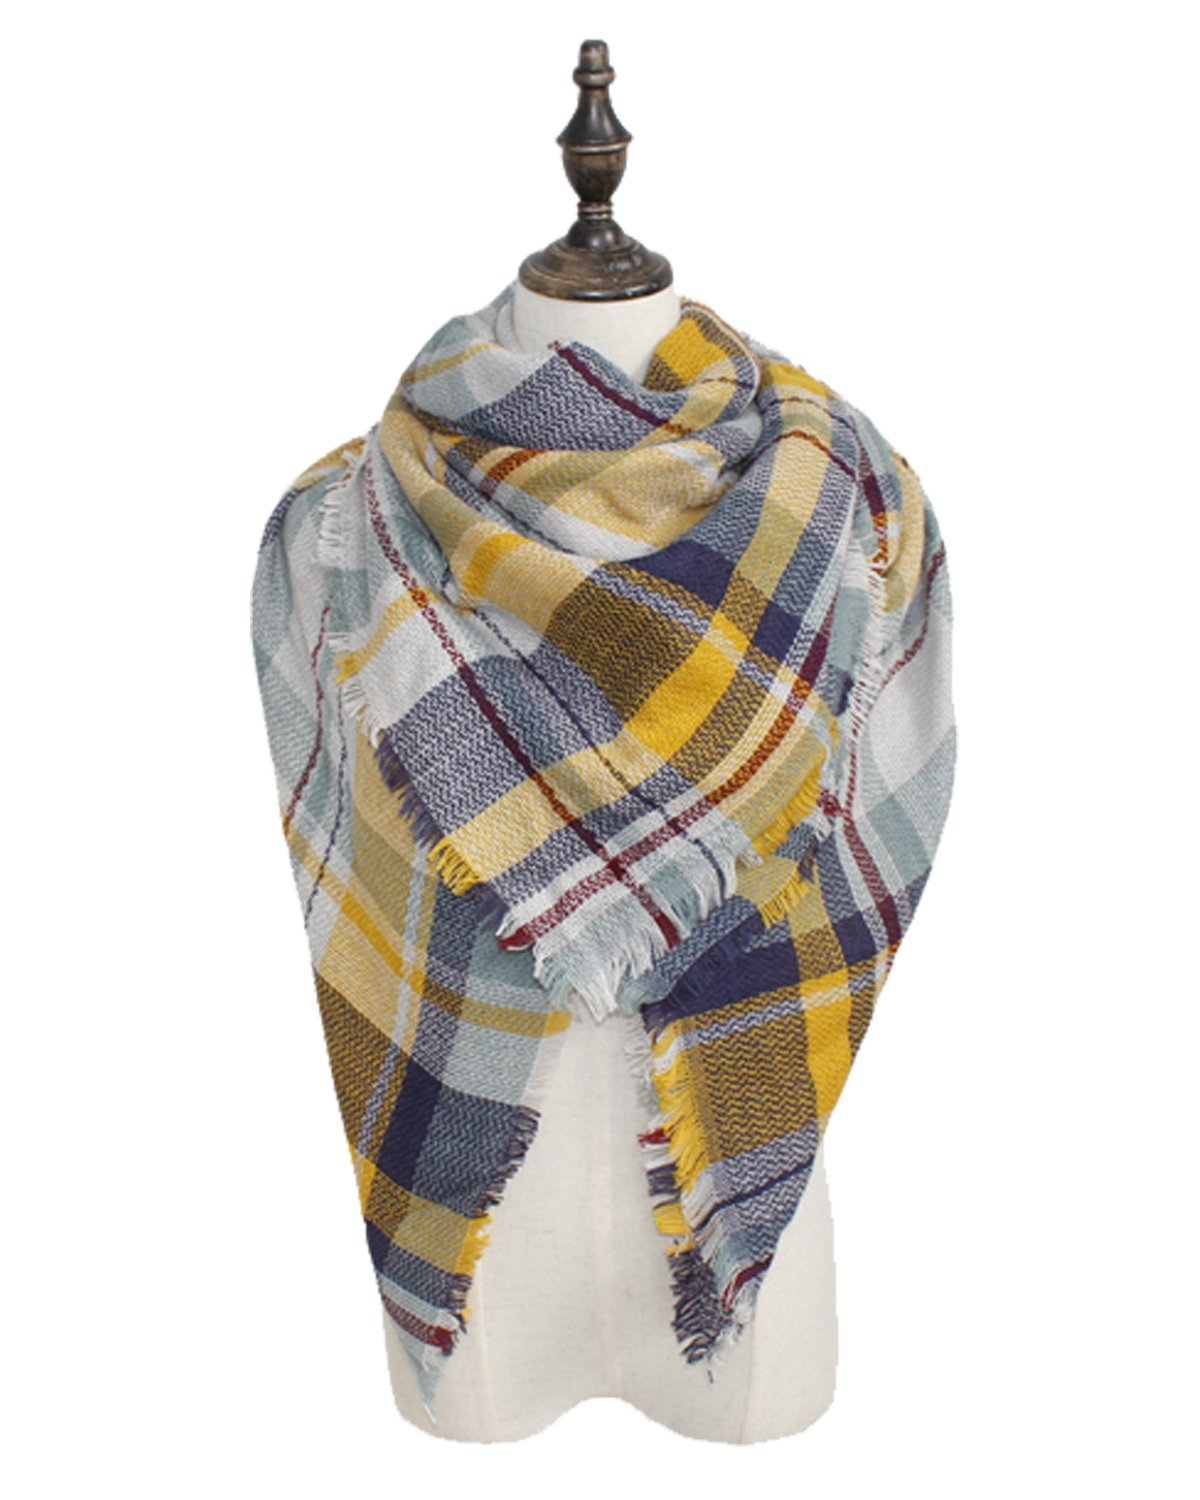 Spring fever Tartan Blanket Scarf Wrap Shawl Neck Stole Plaid Checked Pashmina A08 SUDS0114A07FSSF